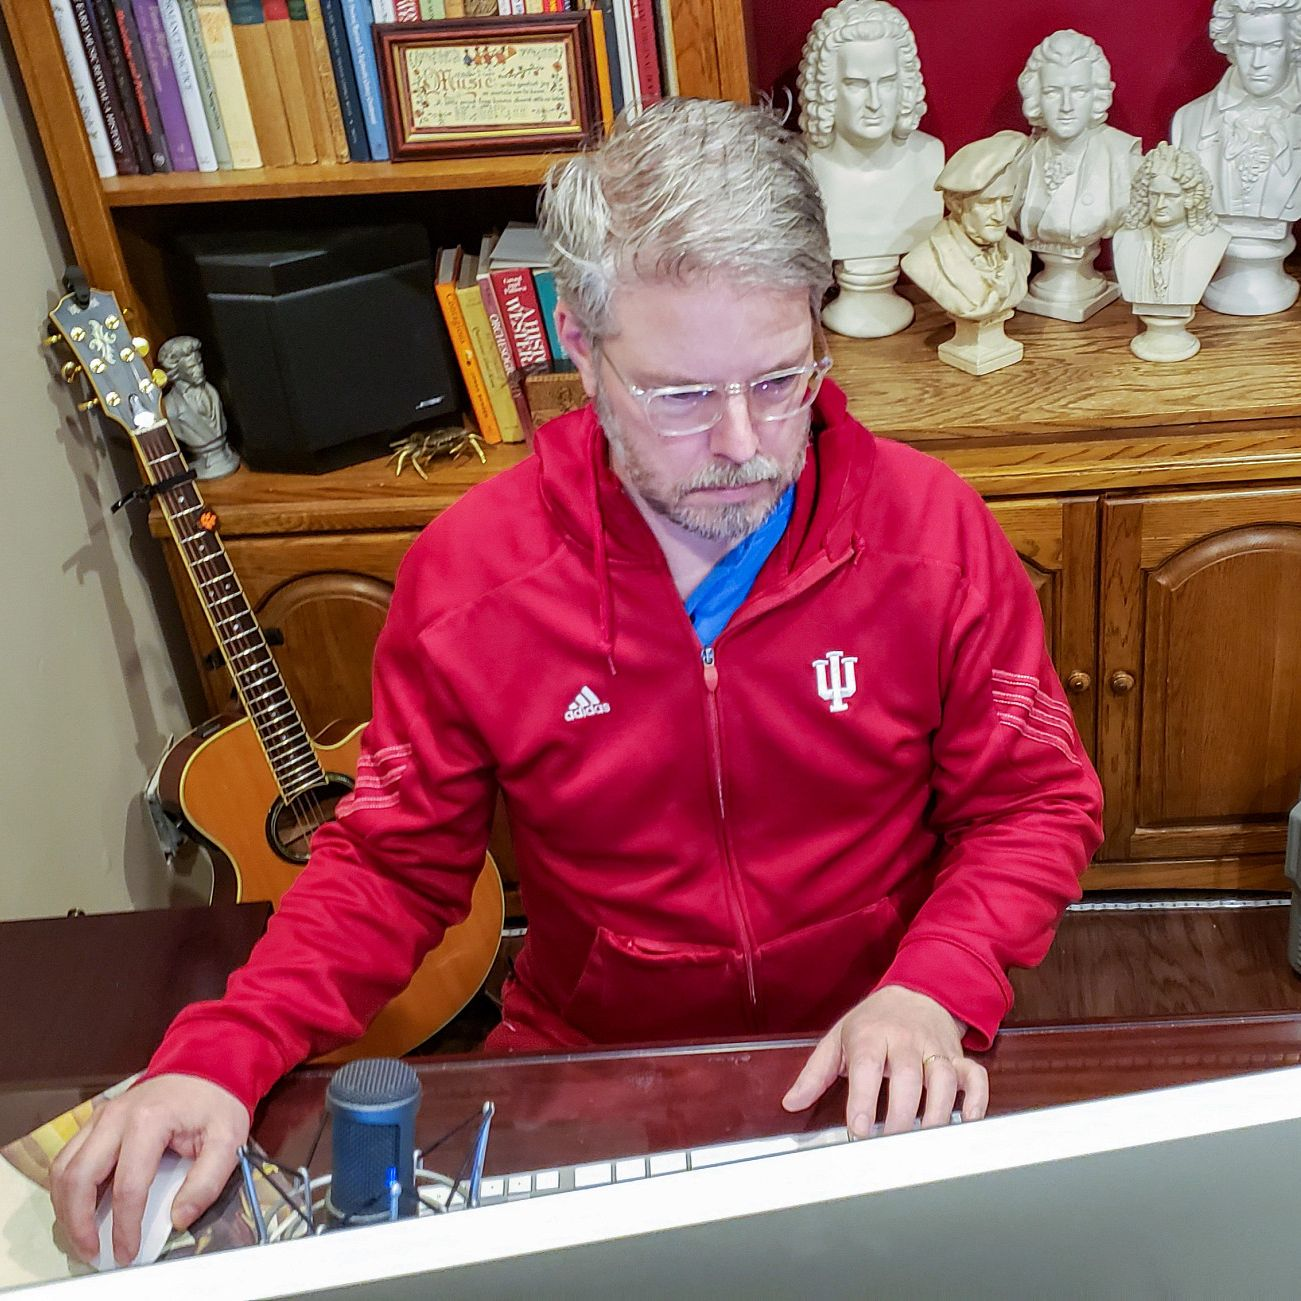 A man in a red IU jacket works at his home computer